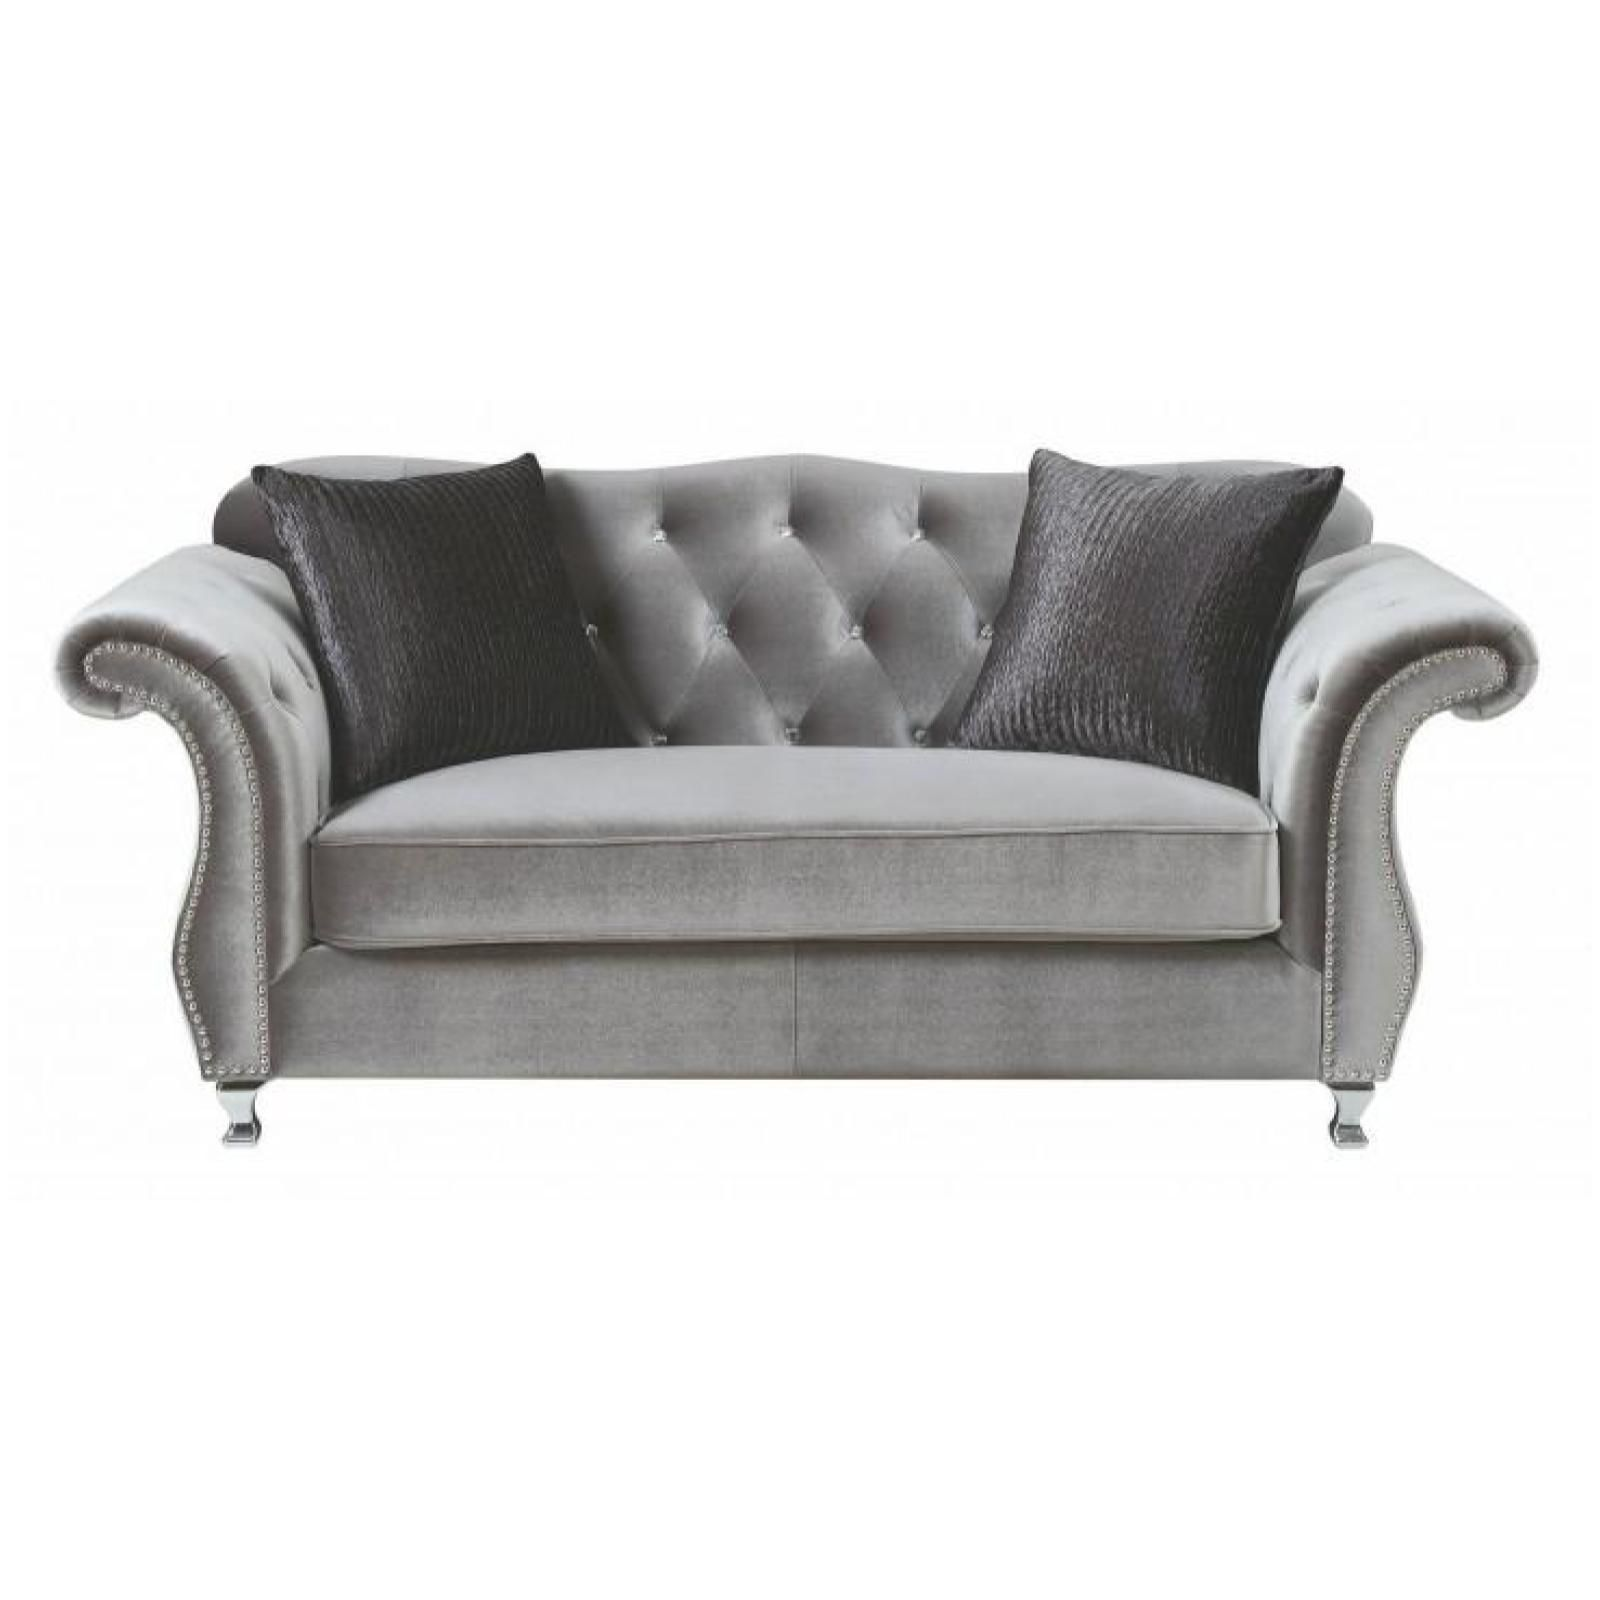 Frostine Living Room Set Living Room White In 2019 Furniture Coaster Furniture Chesterfield Sofa